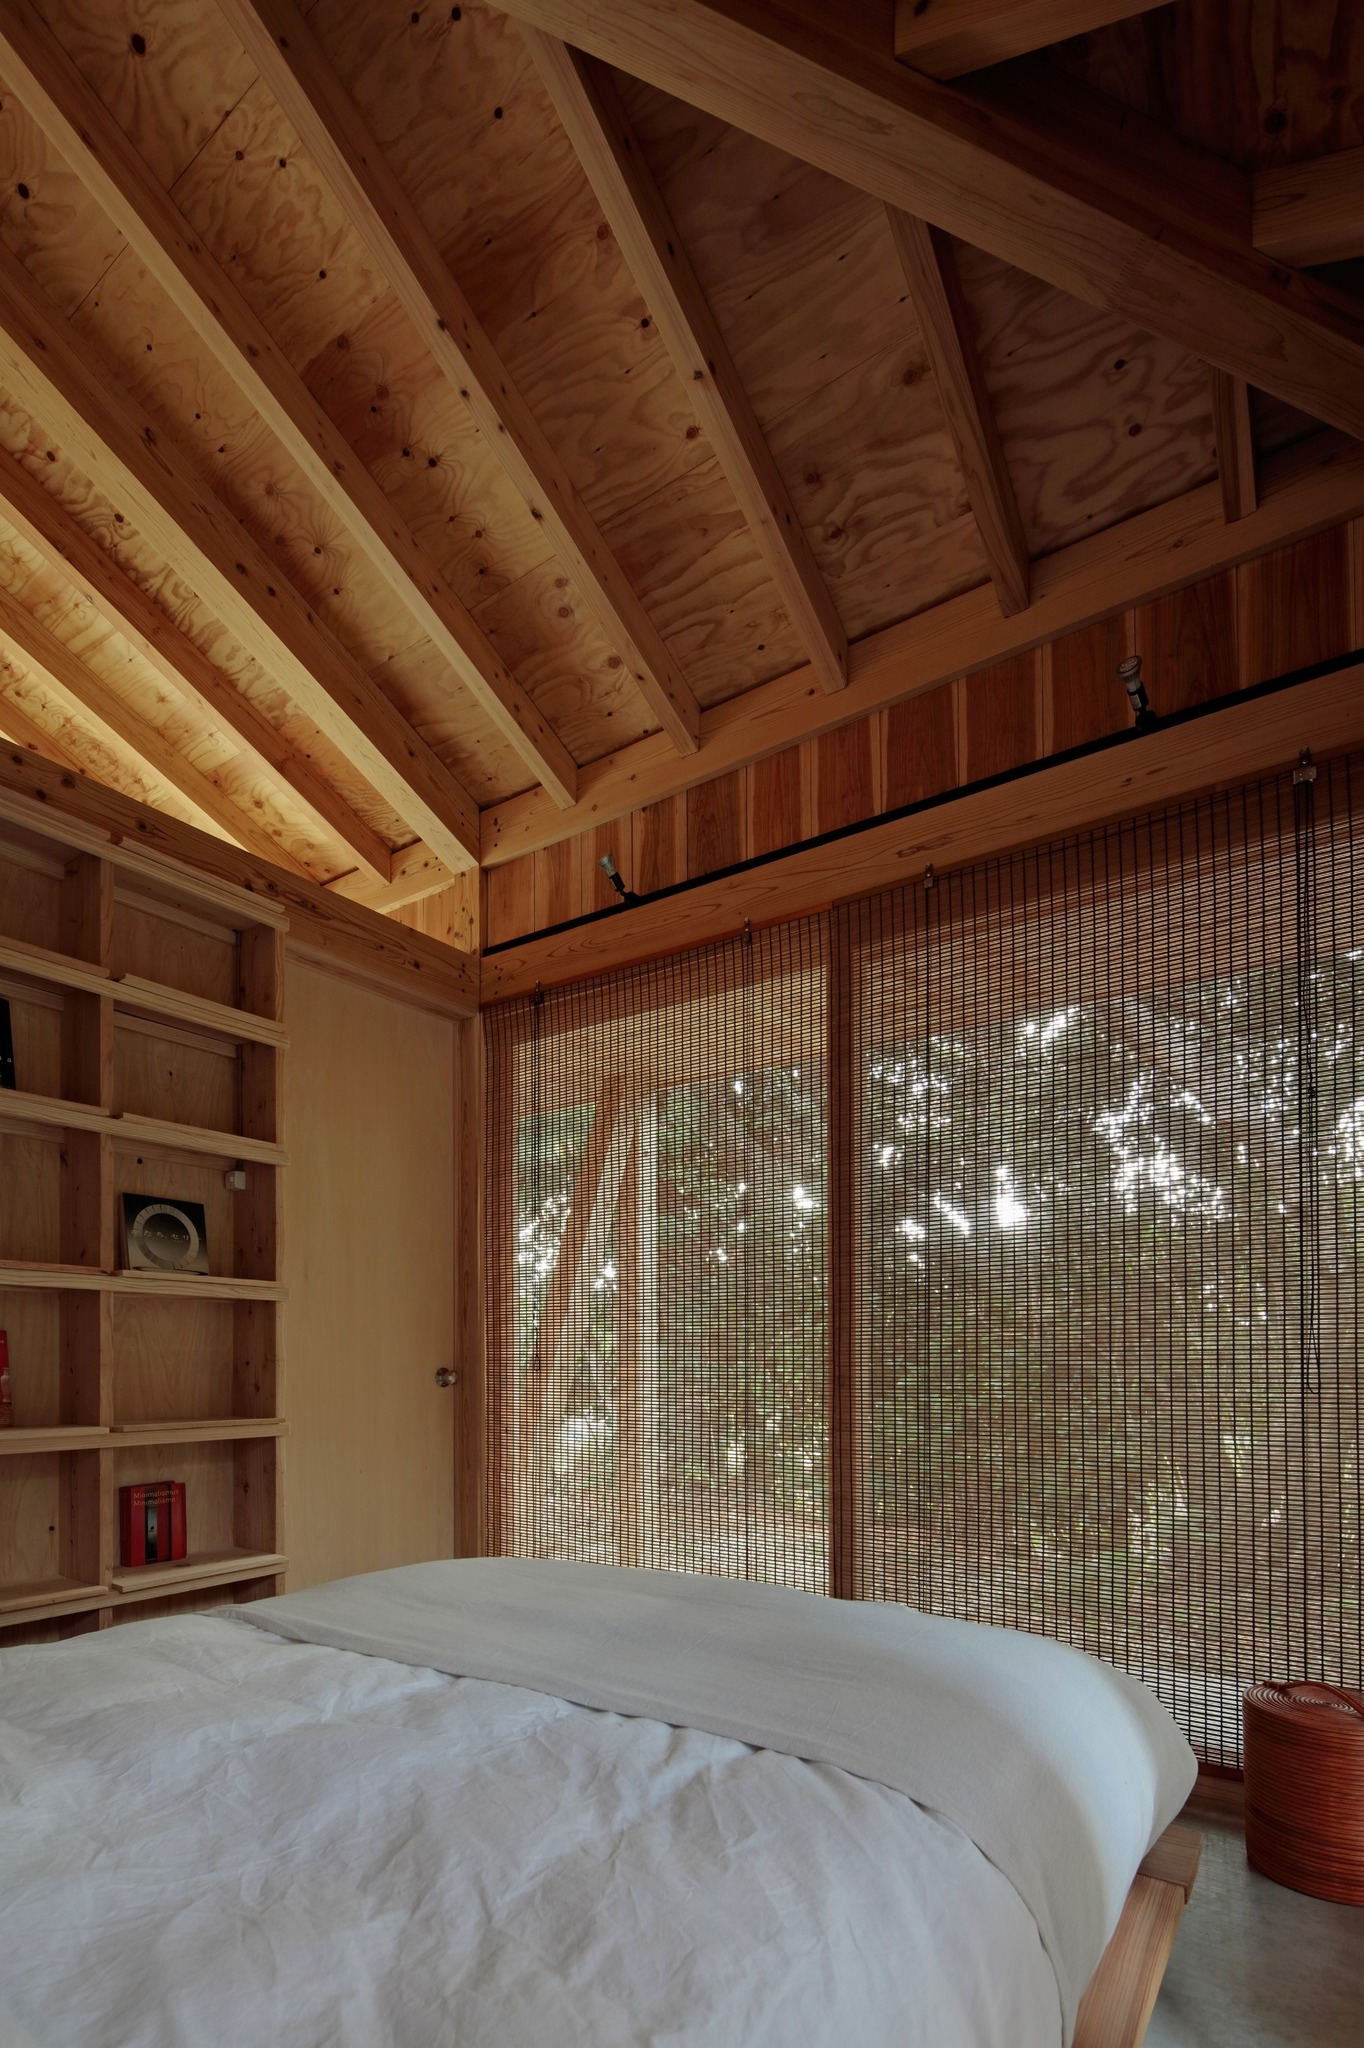 Bed room with blind